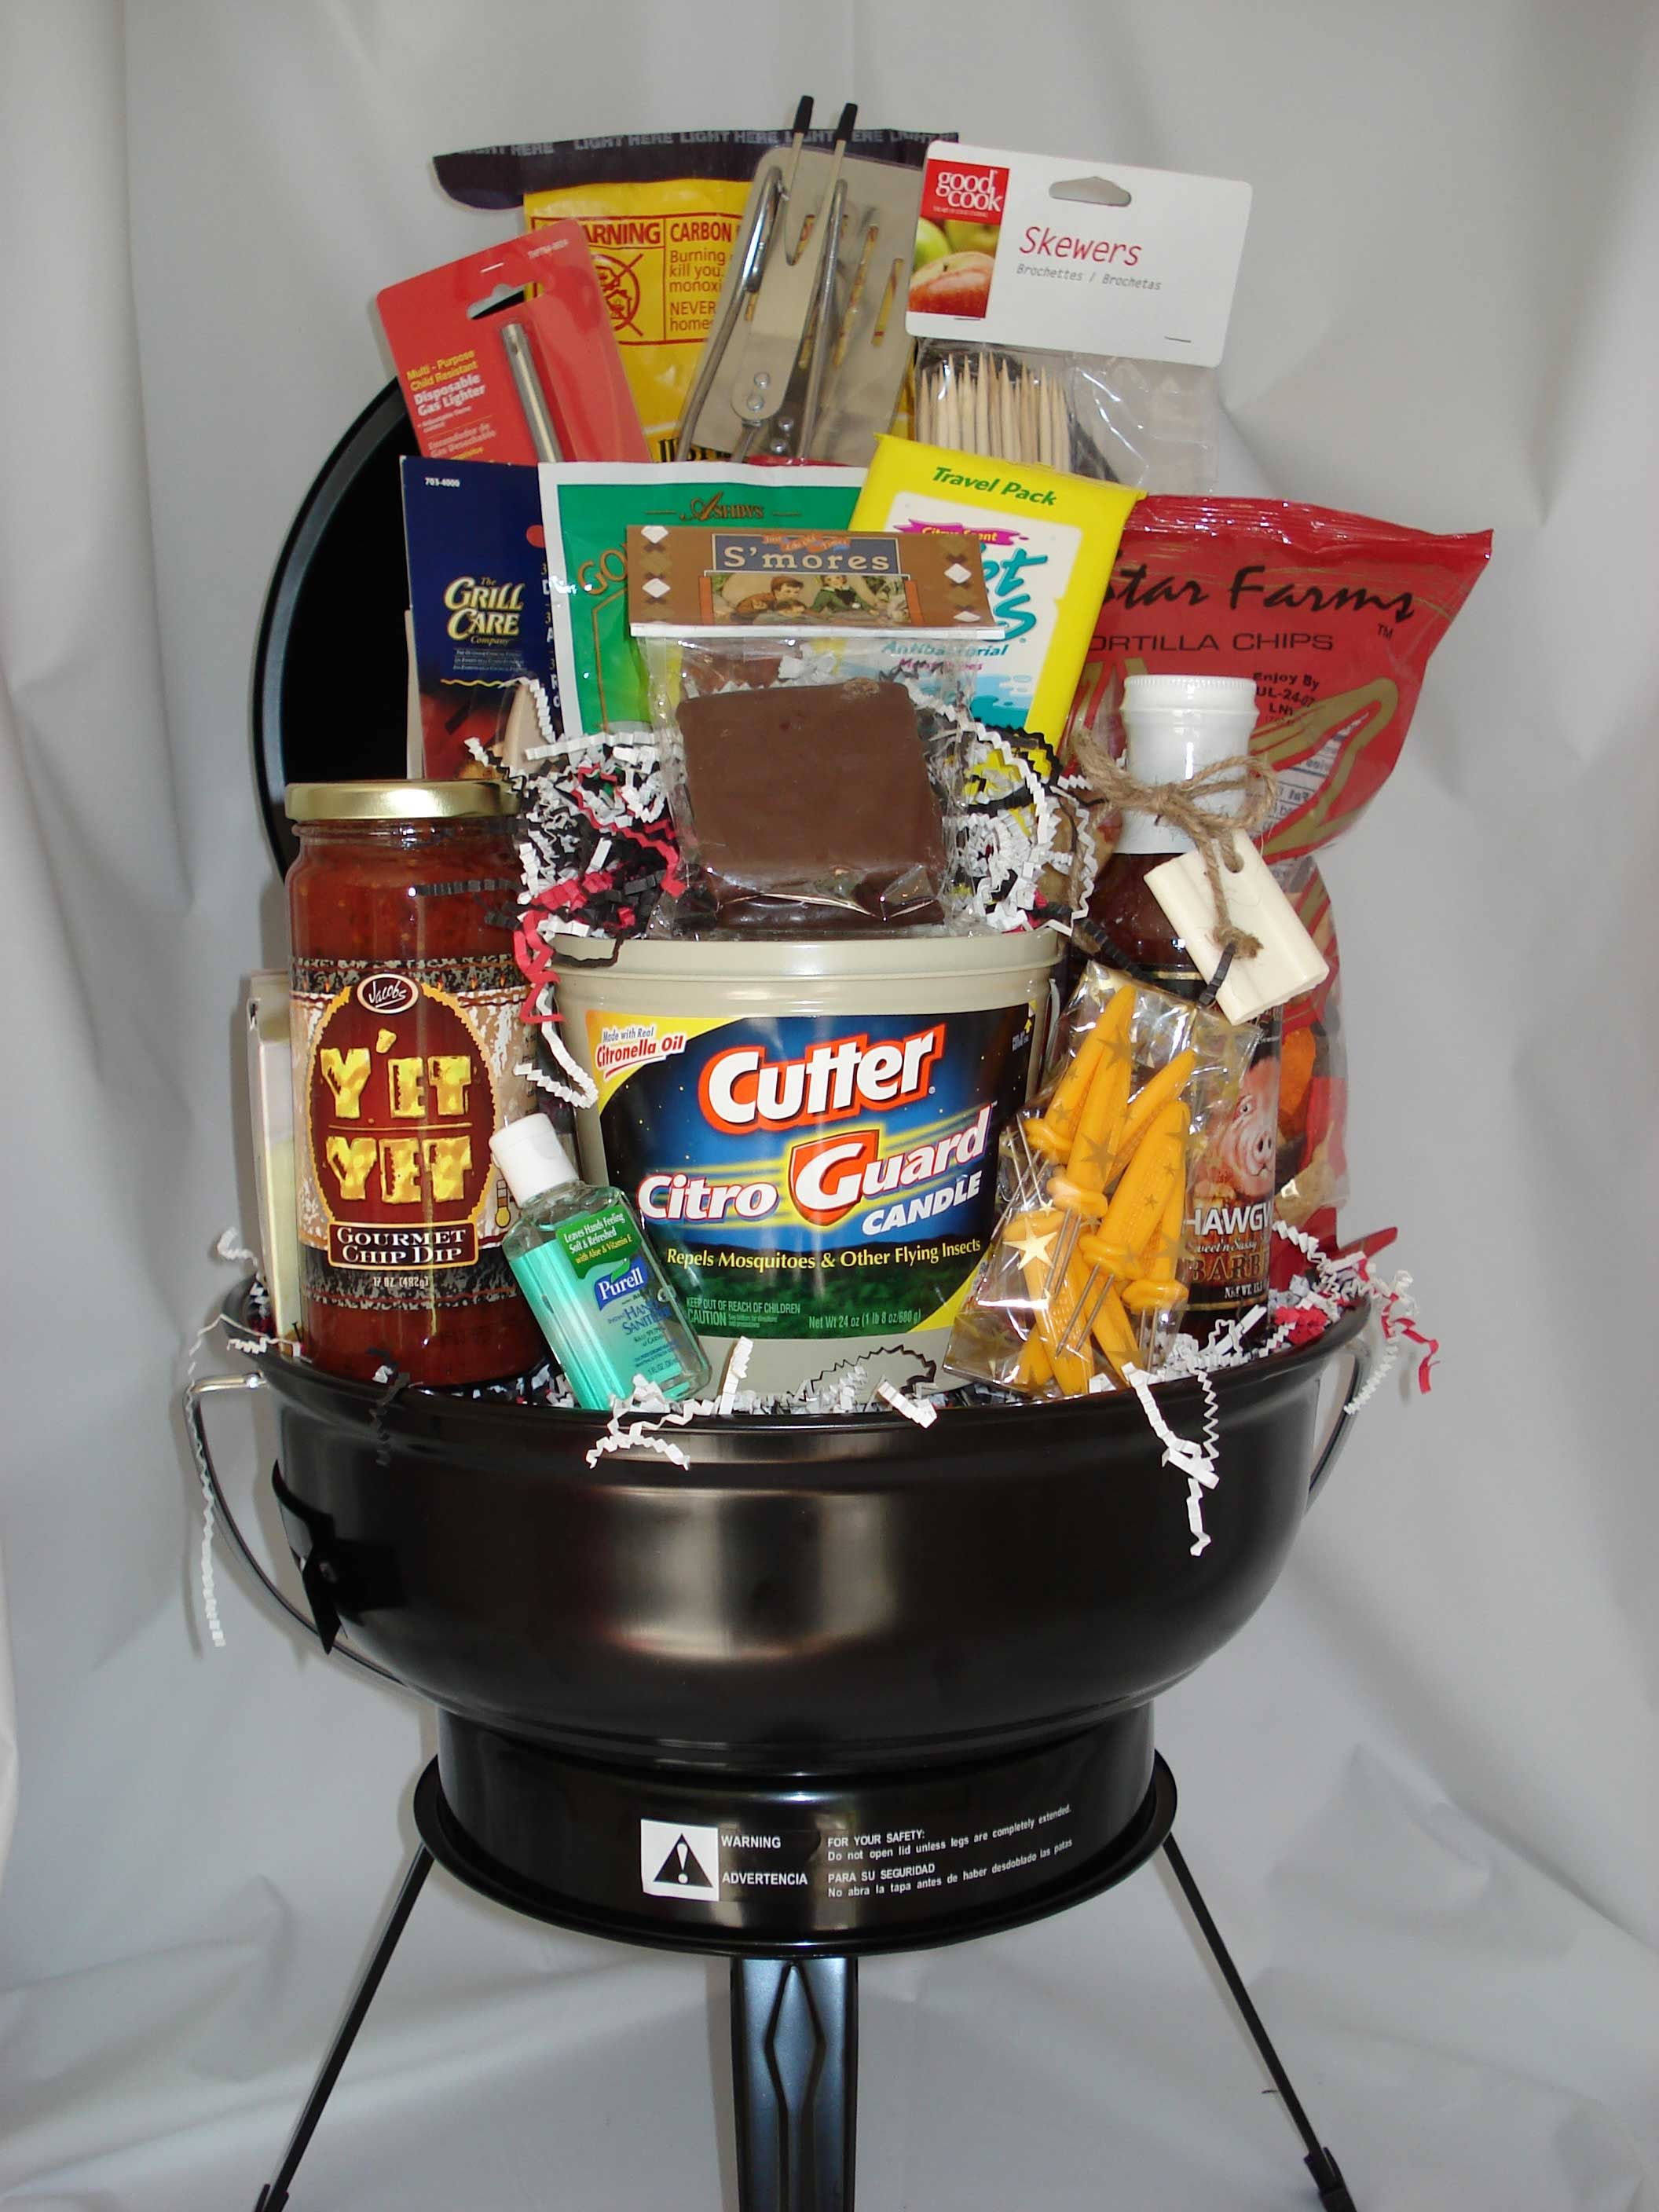 bbq gift basket | clever | pinterest | raffle baskets, basket ideas